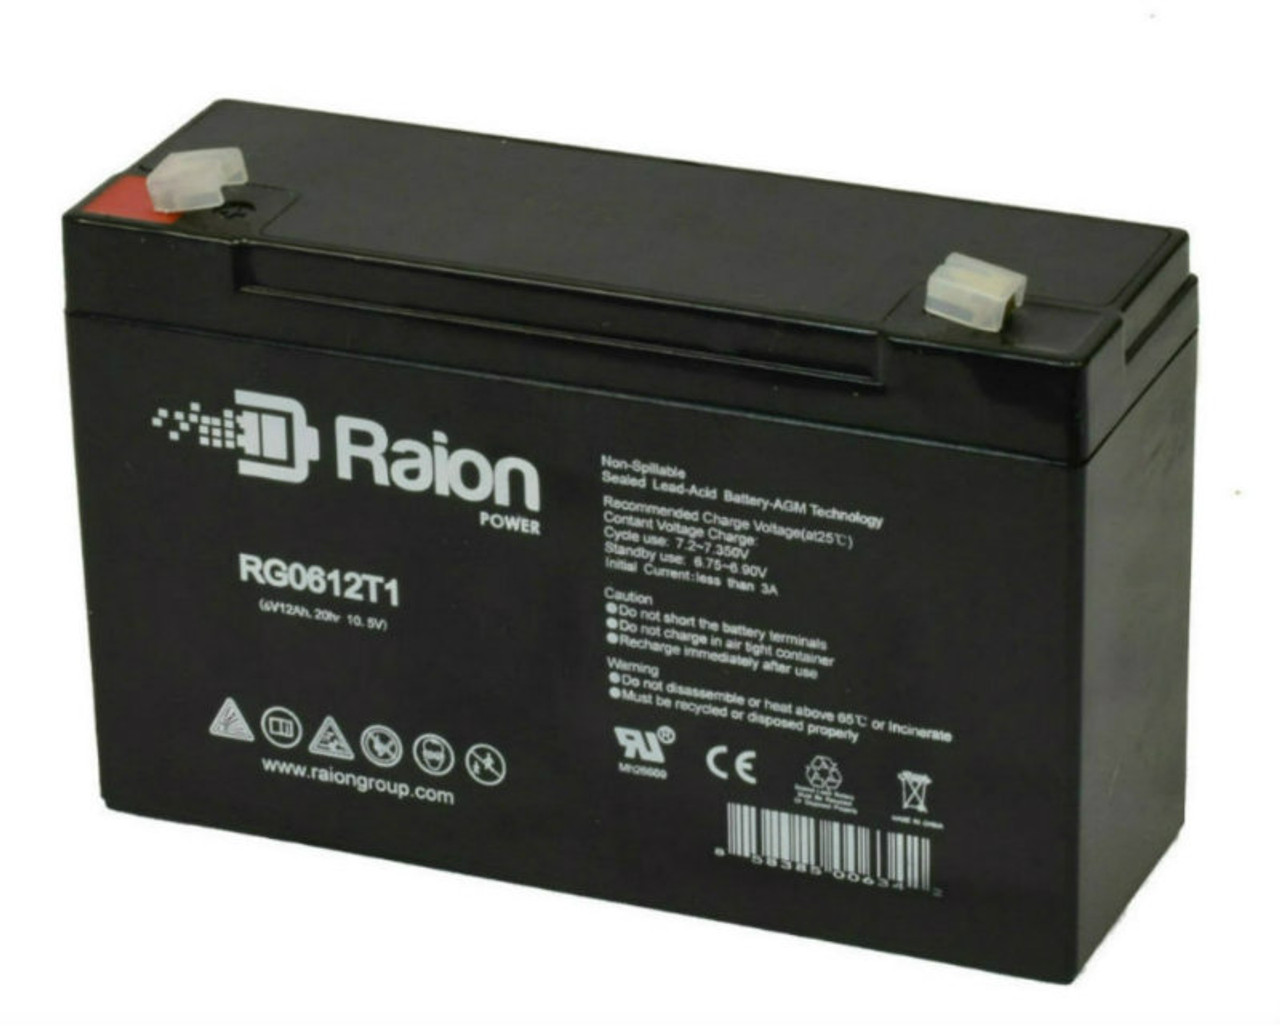 Raion Power RG06120T1 Replacement Battery Pack for Lithonia ELB0610 emergency light